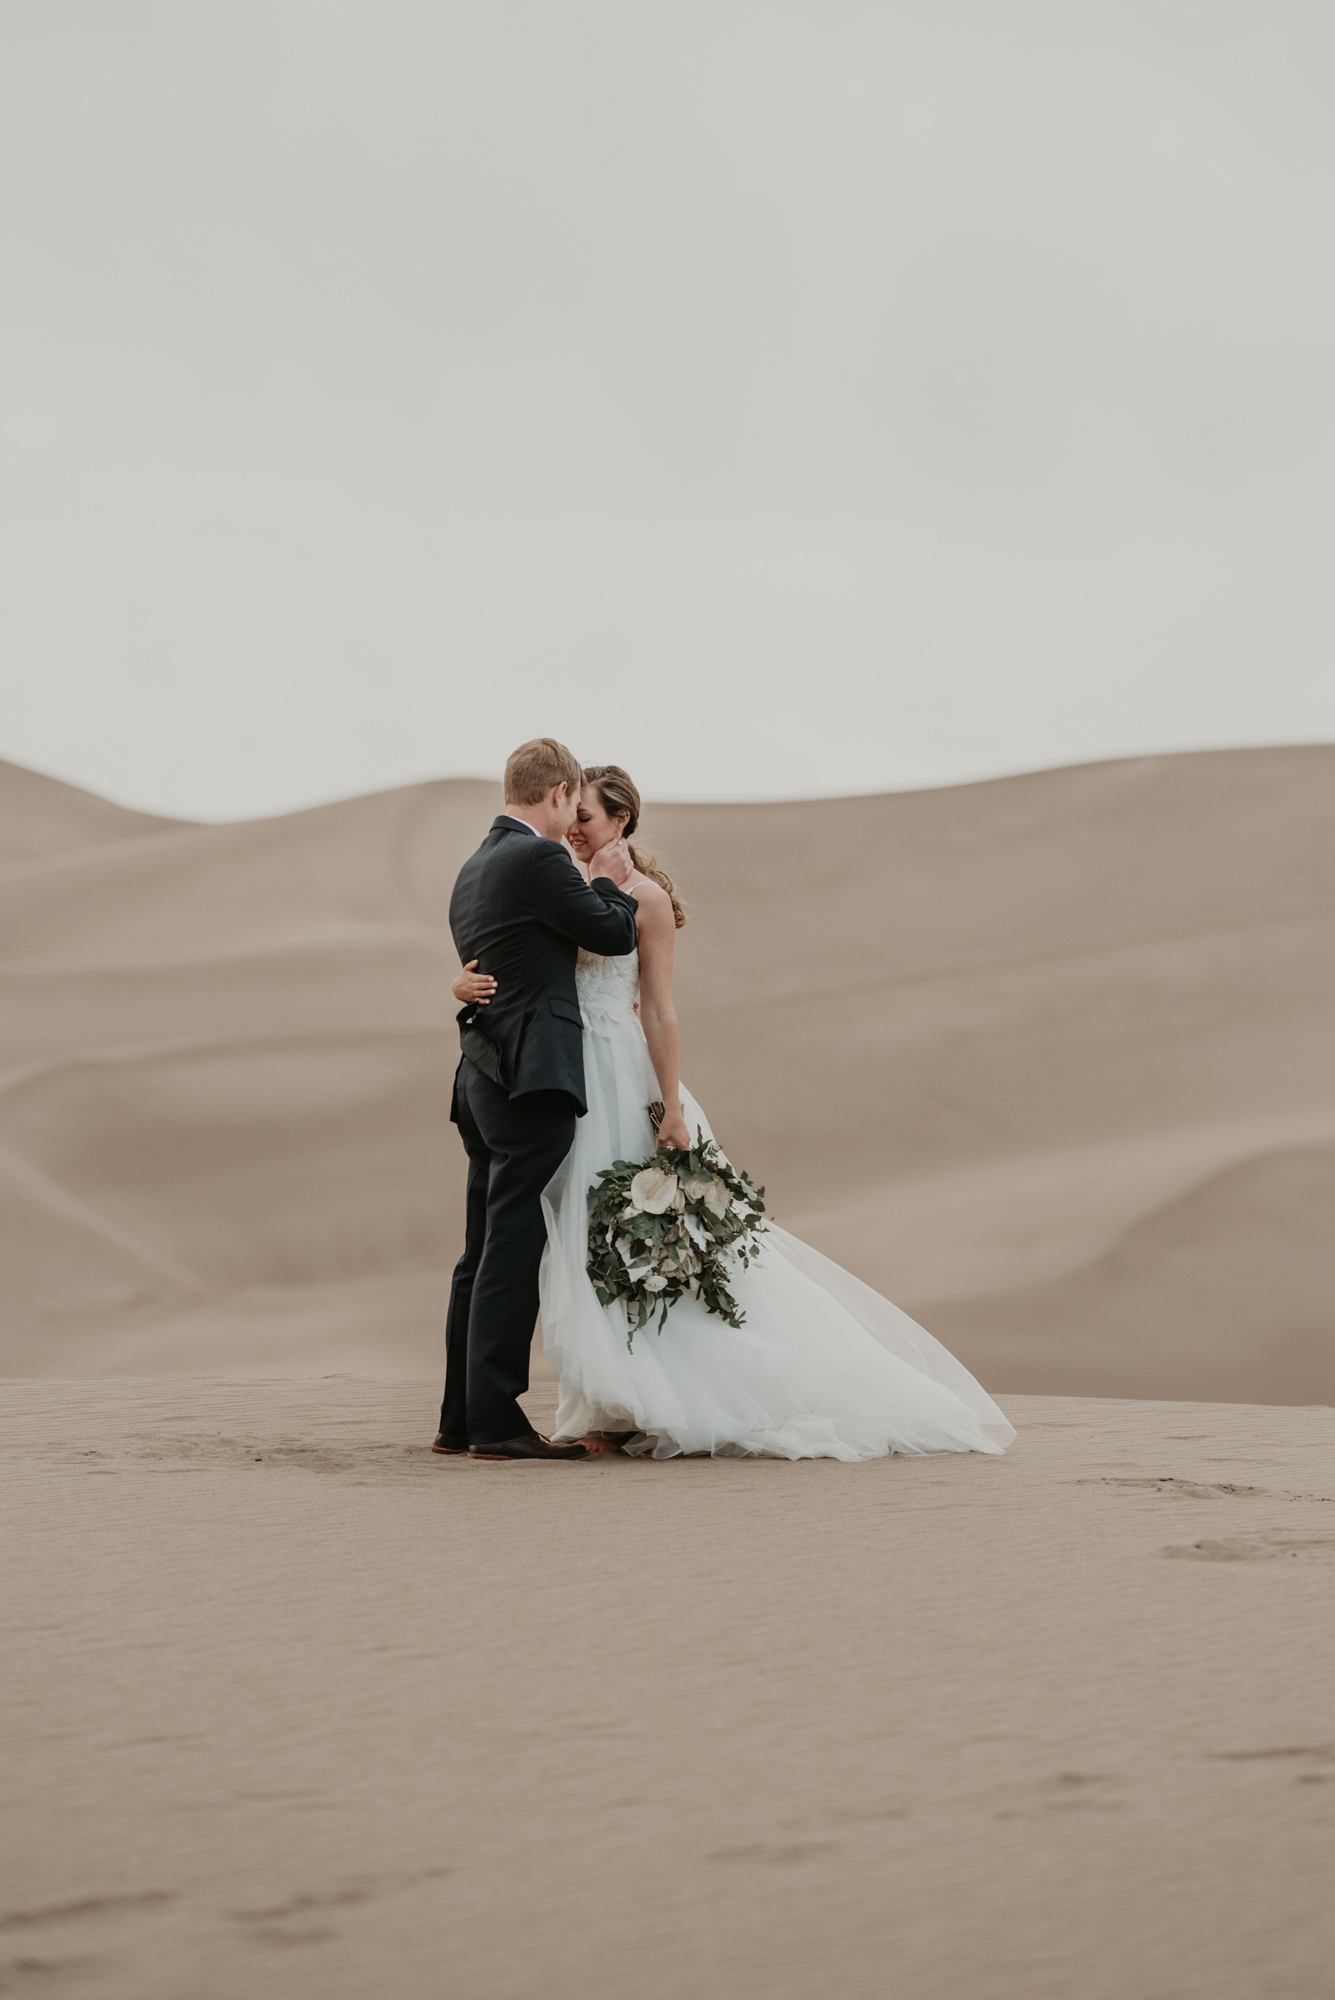 Wild Earth Weddings and Elopements